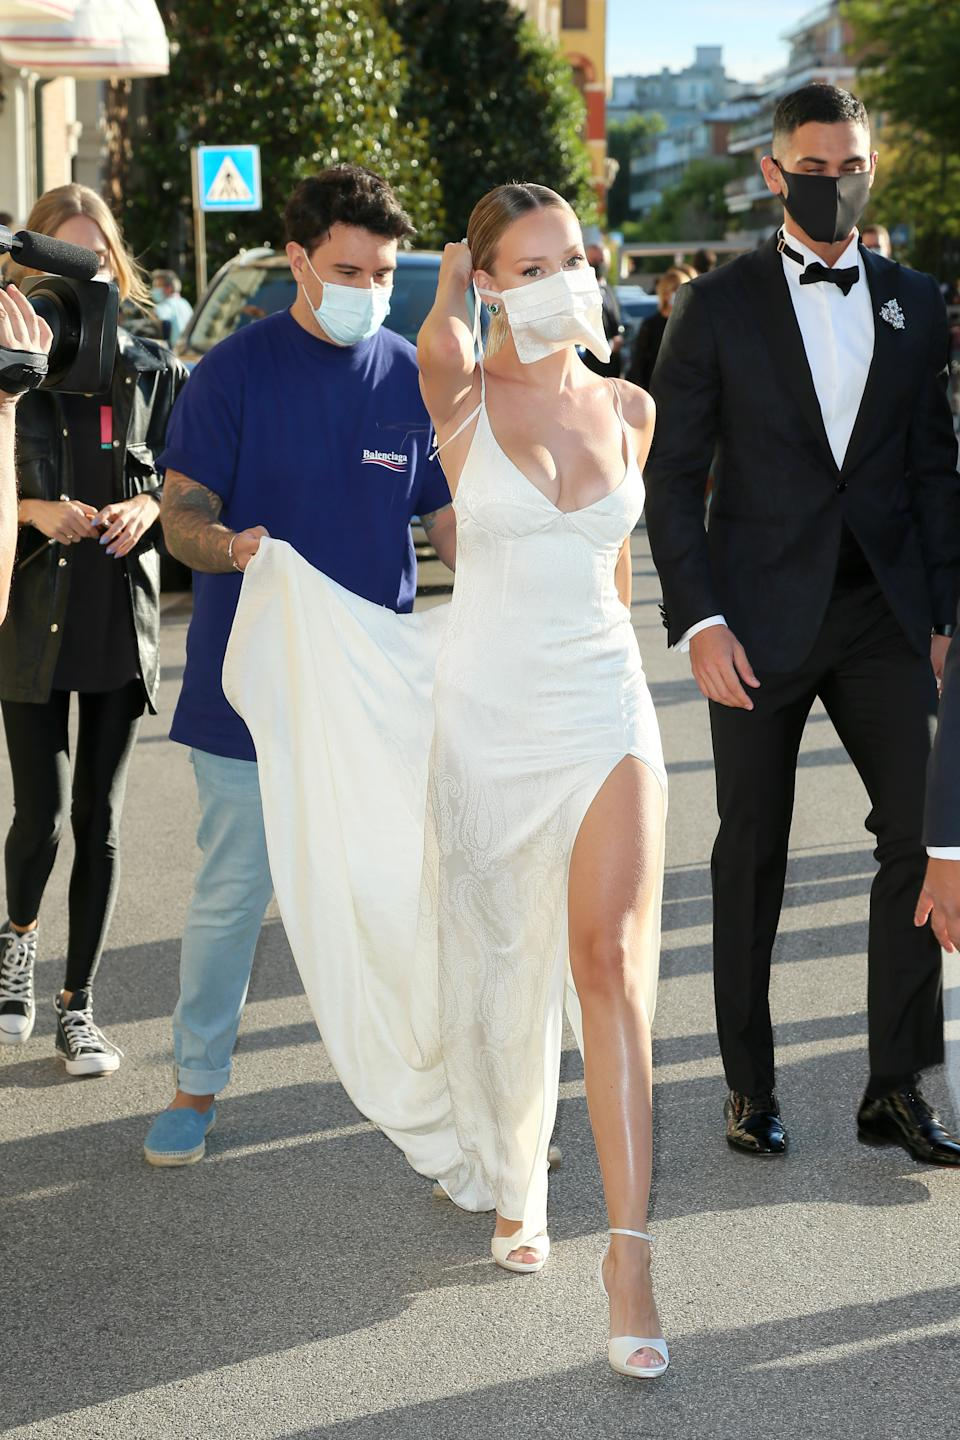 VENICE, ITALY - SEPTEMBER 02: Ester Exposito is seen arriving at the 77th Venice Film Festival on September 02, 2020 in Venice, Italy. (Photo by Ernesto S. Ruscio/Getty Images)